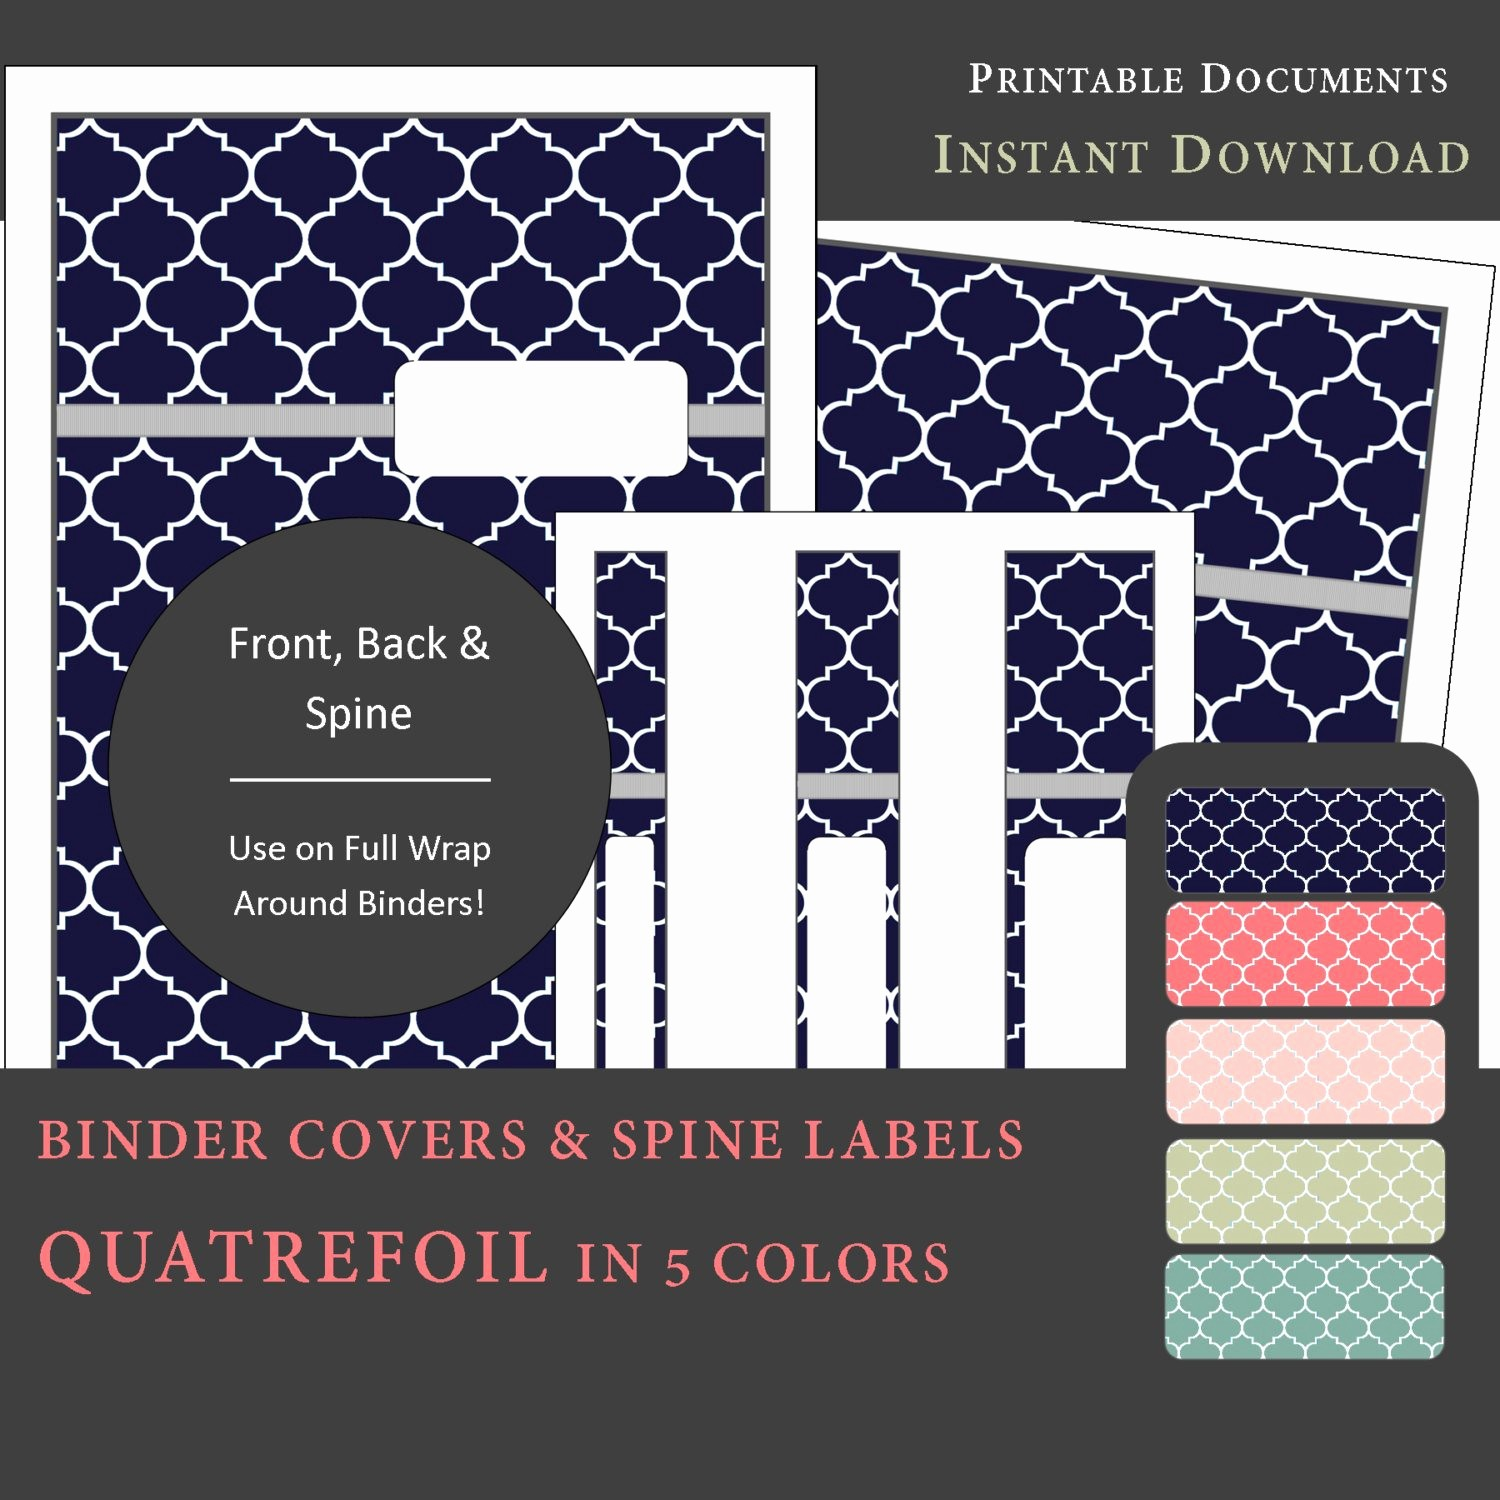 Free Printable Binder Spine Labels Fresh Printable Binder Covers & Spine Label Inserts Quatrefoil